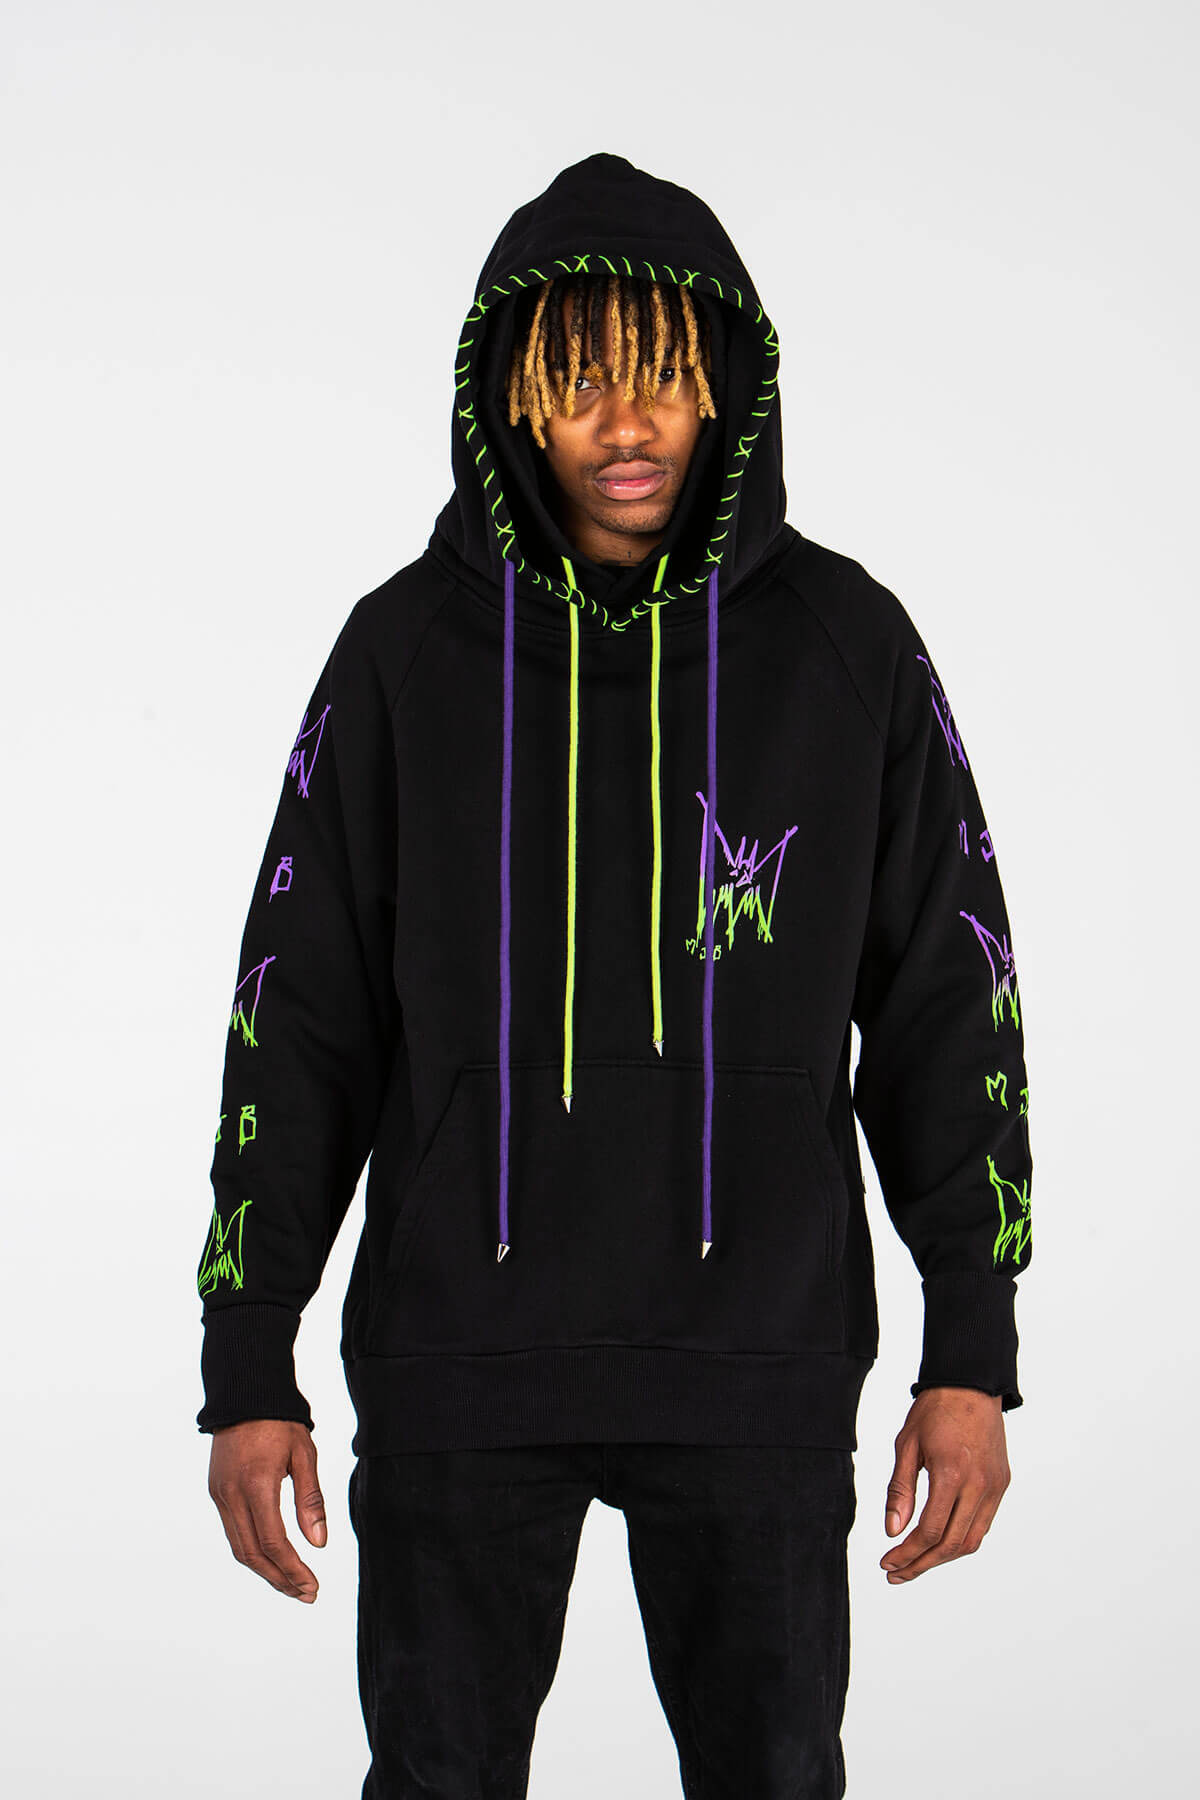 MULTI COLOURED SILK SCREEN PRINT - HOODIE - MJB